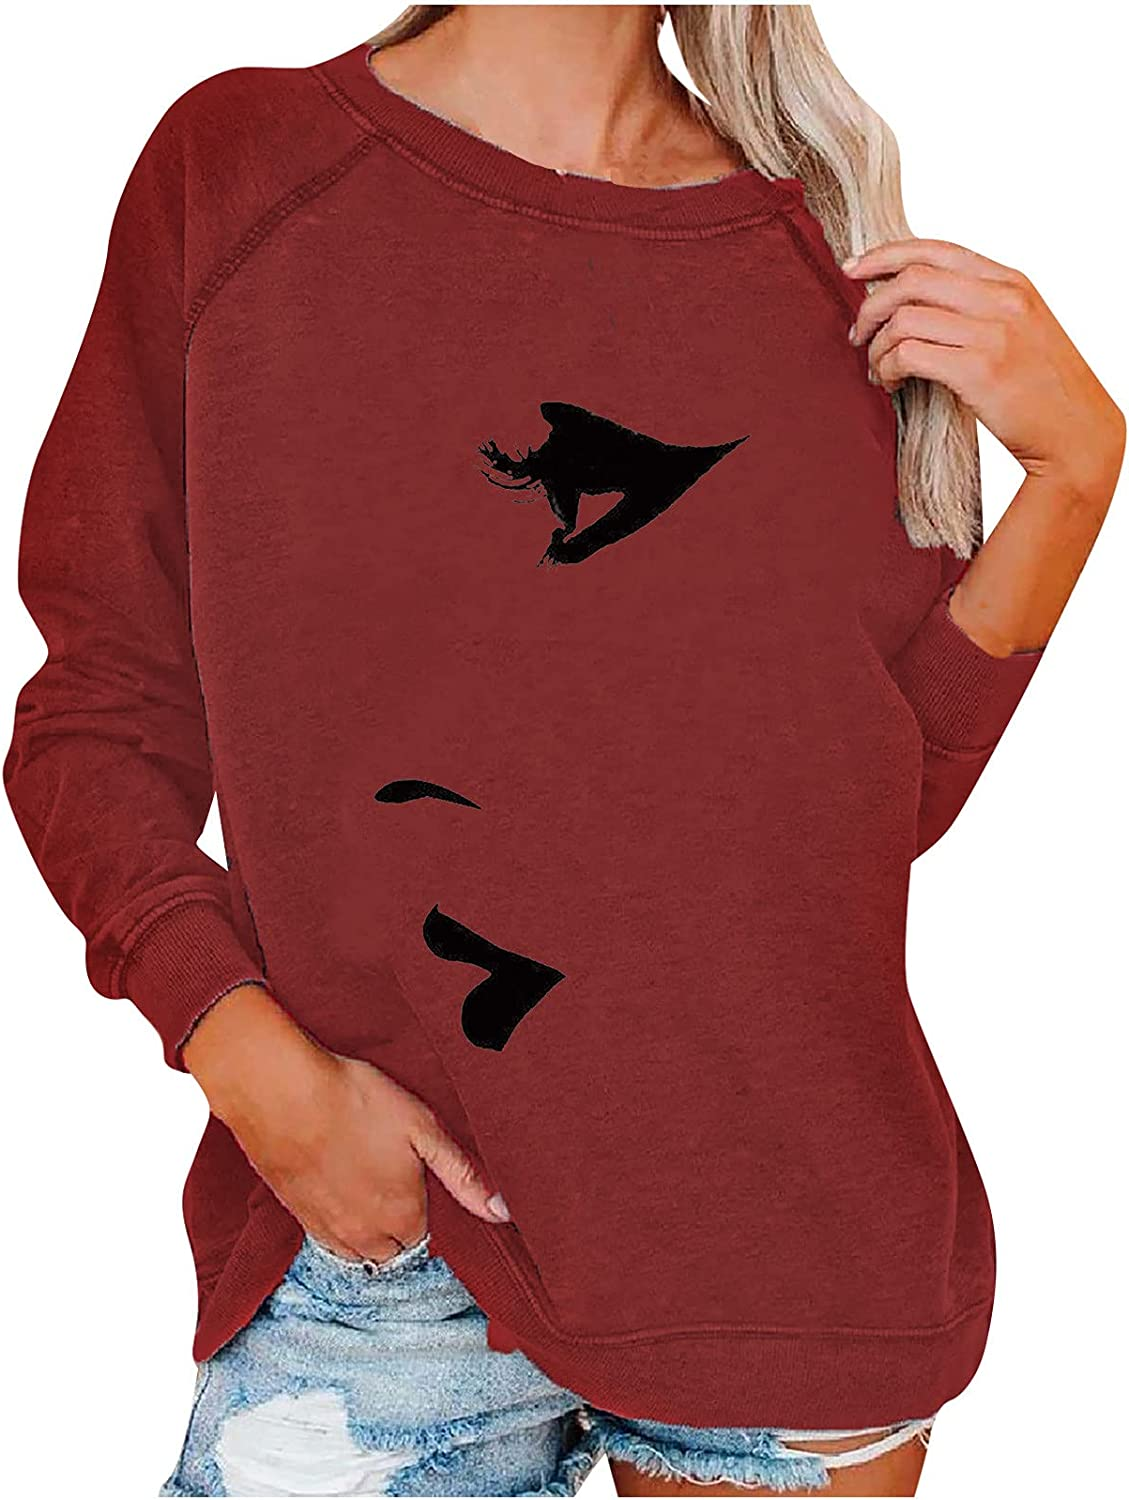 JEGULV Fall Sweatshirts for Womens Sleeve Credence Crewneck Long Max 68% OFF Pullover